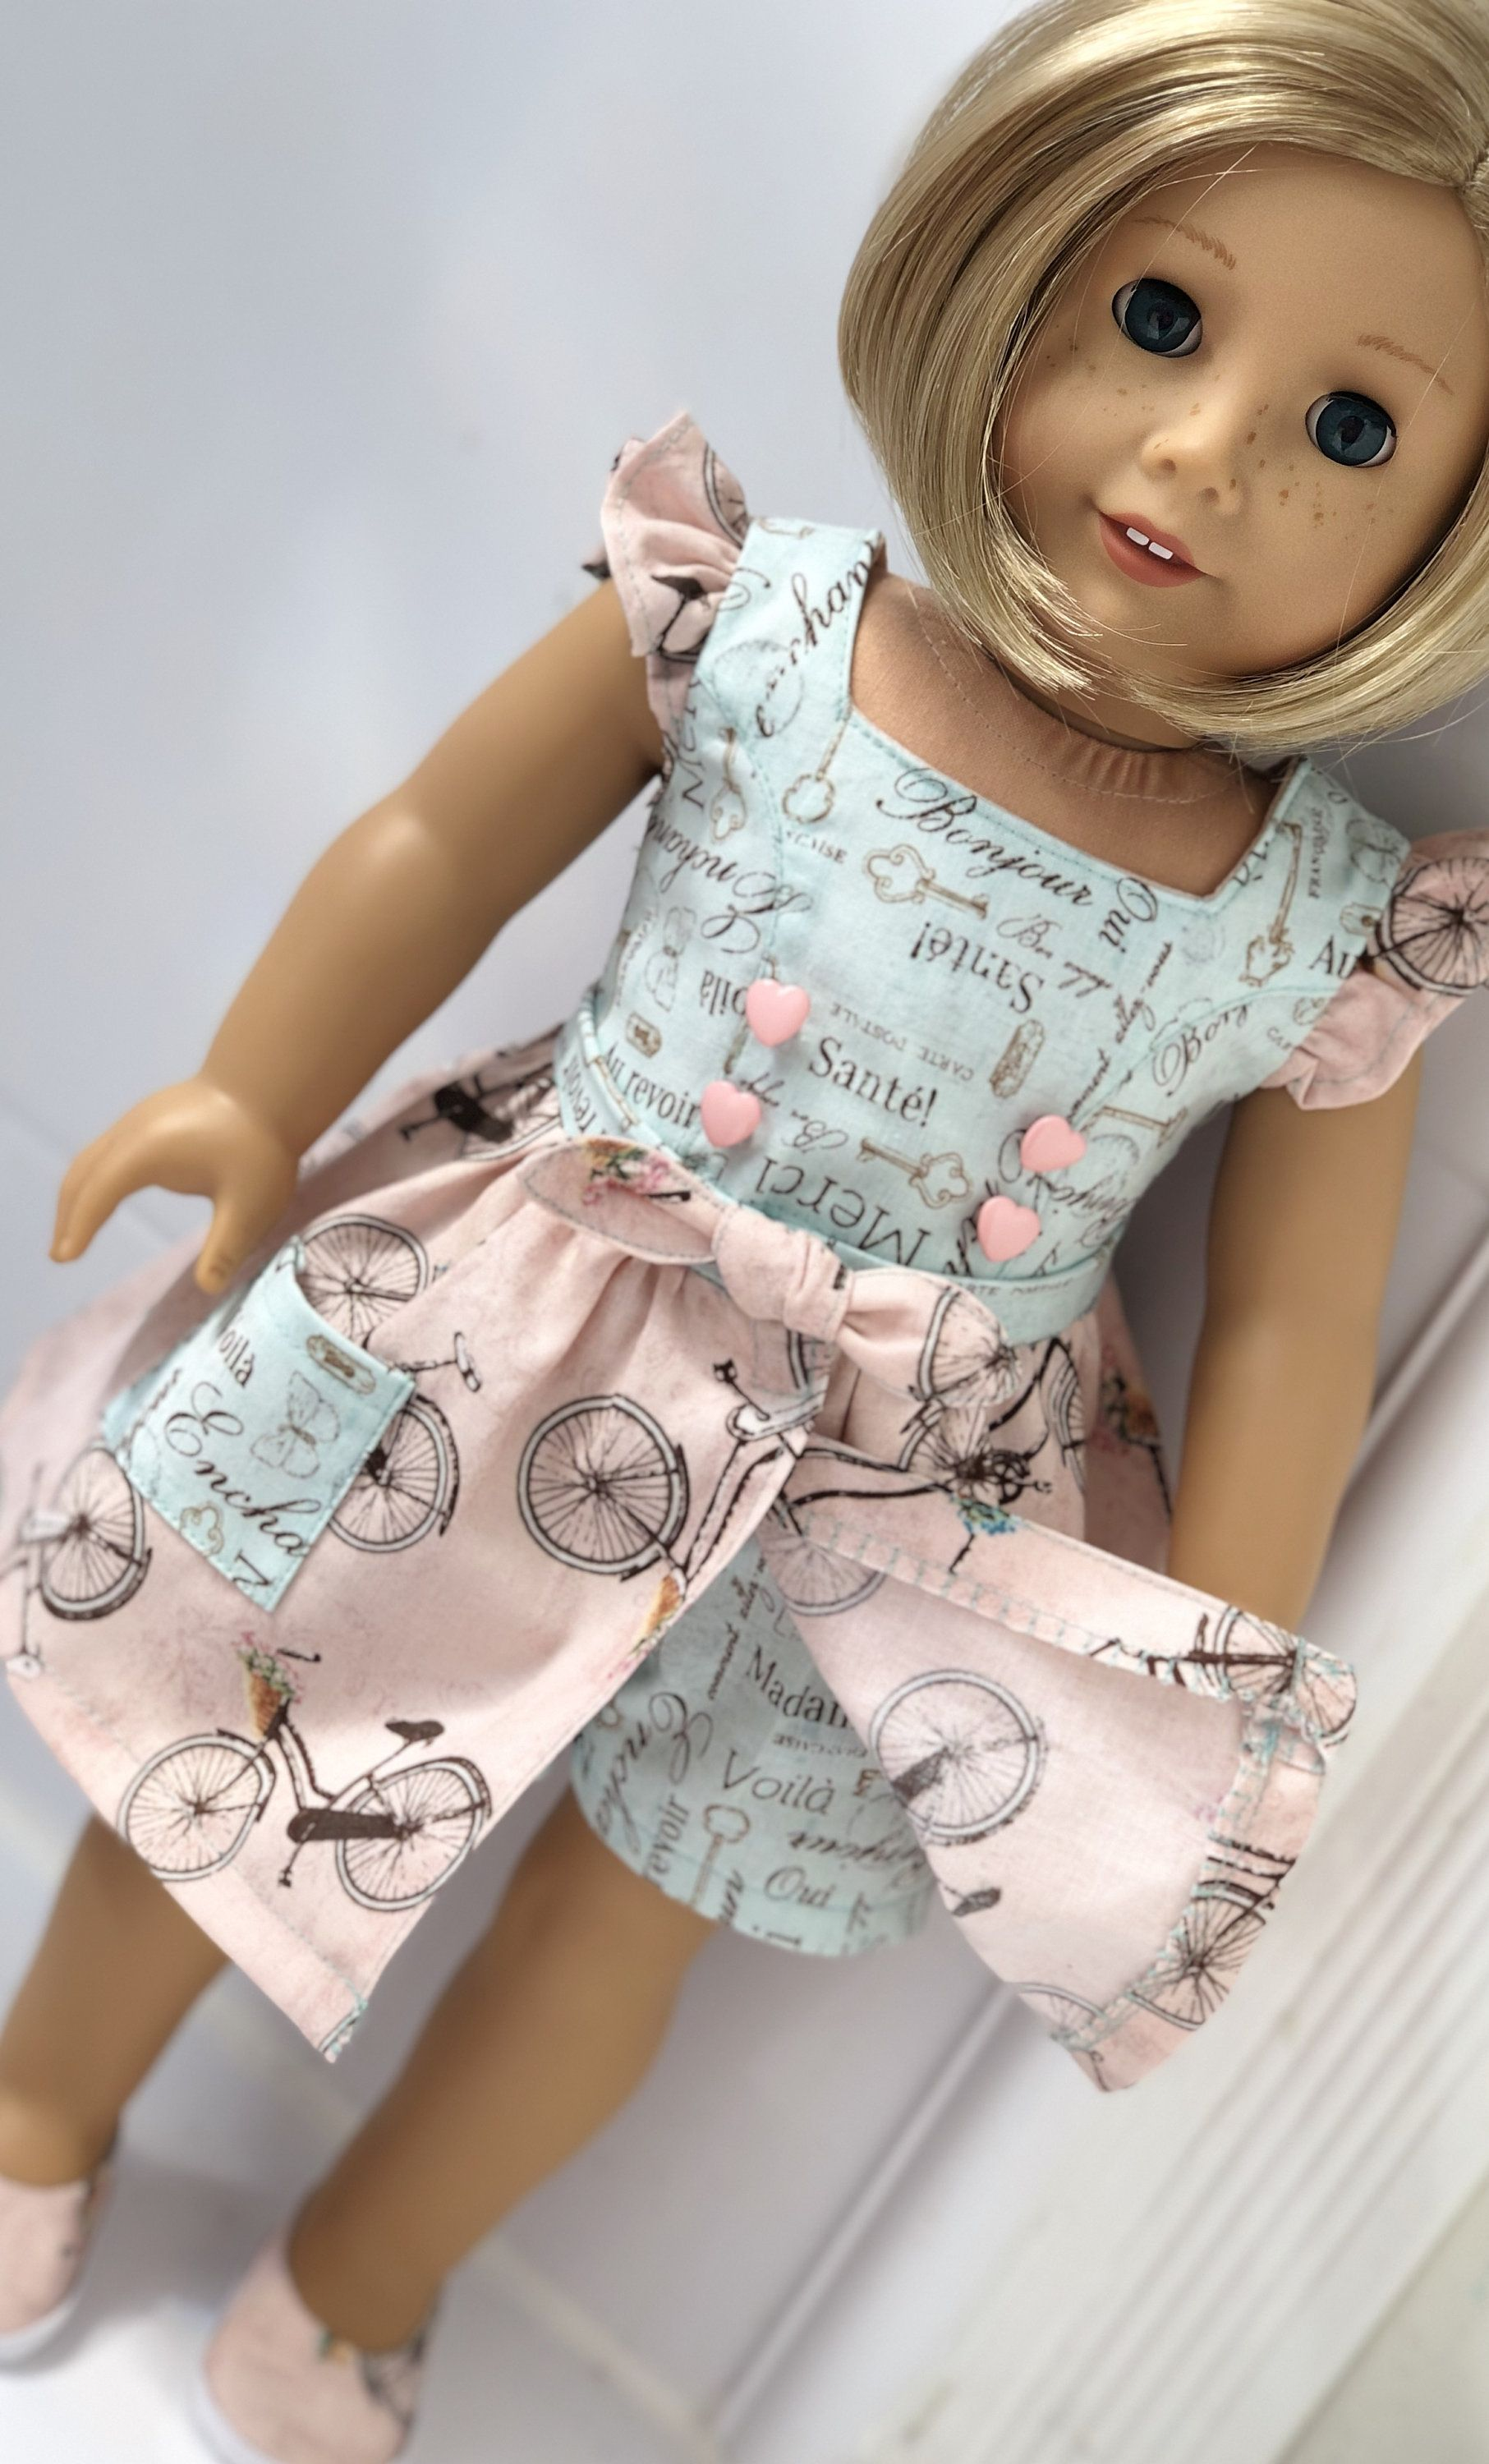 18 Girl Doll Clothes Blue French Phrase Playsuit with Pink Bicycle Over Skirt and Matching Shoes Made to fit Dolls like American Girl #girldollclothes